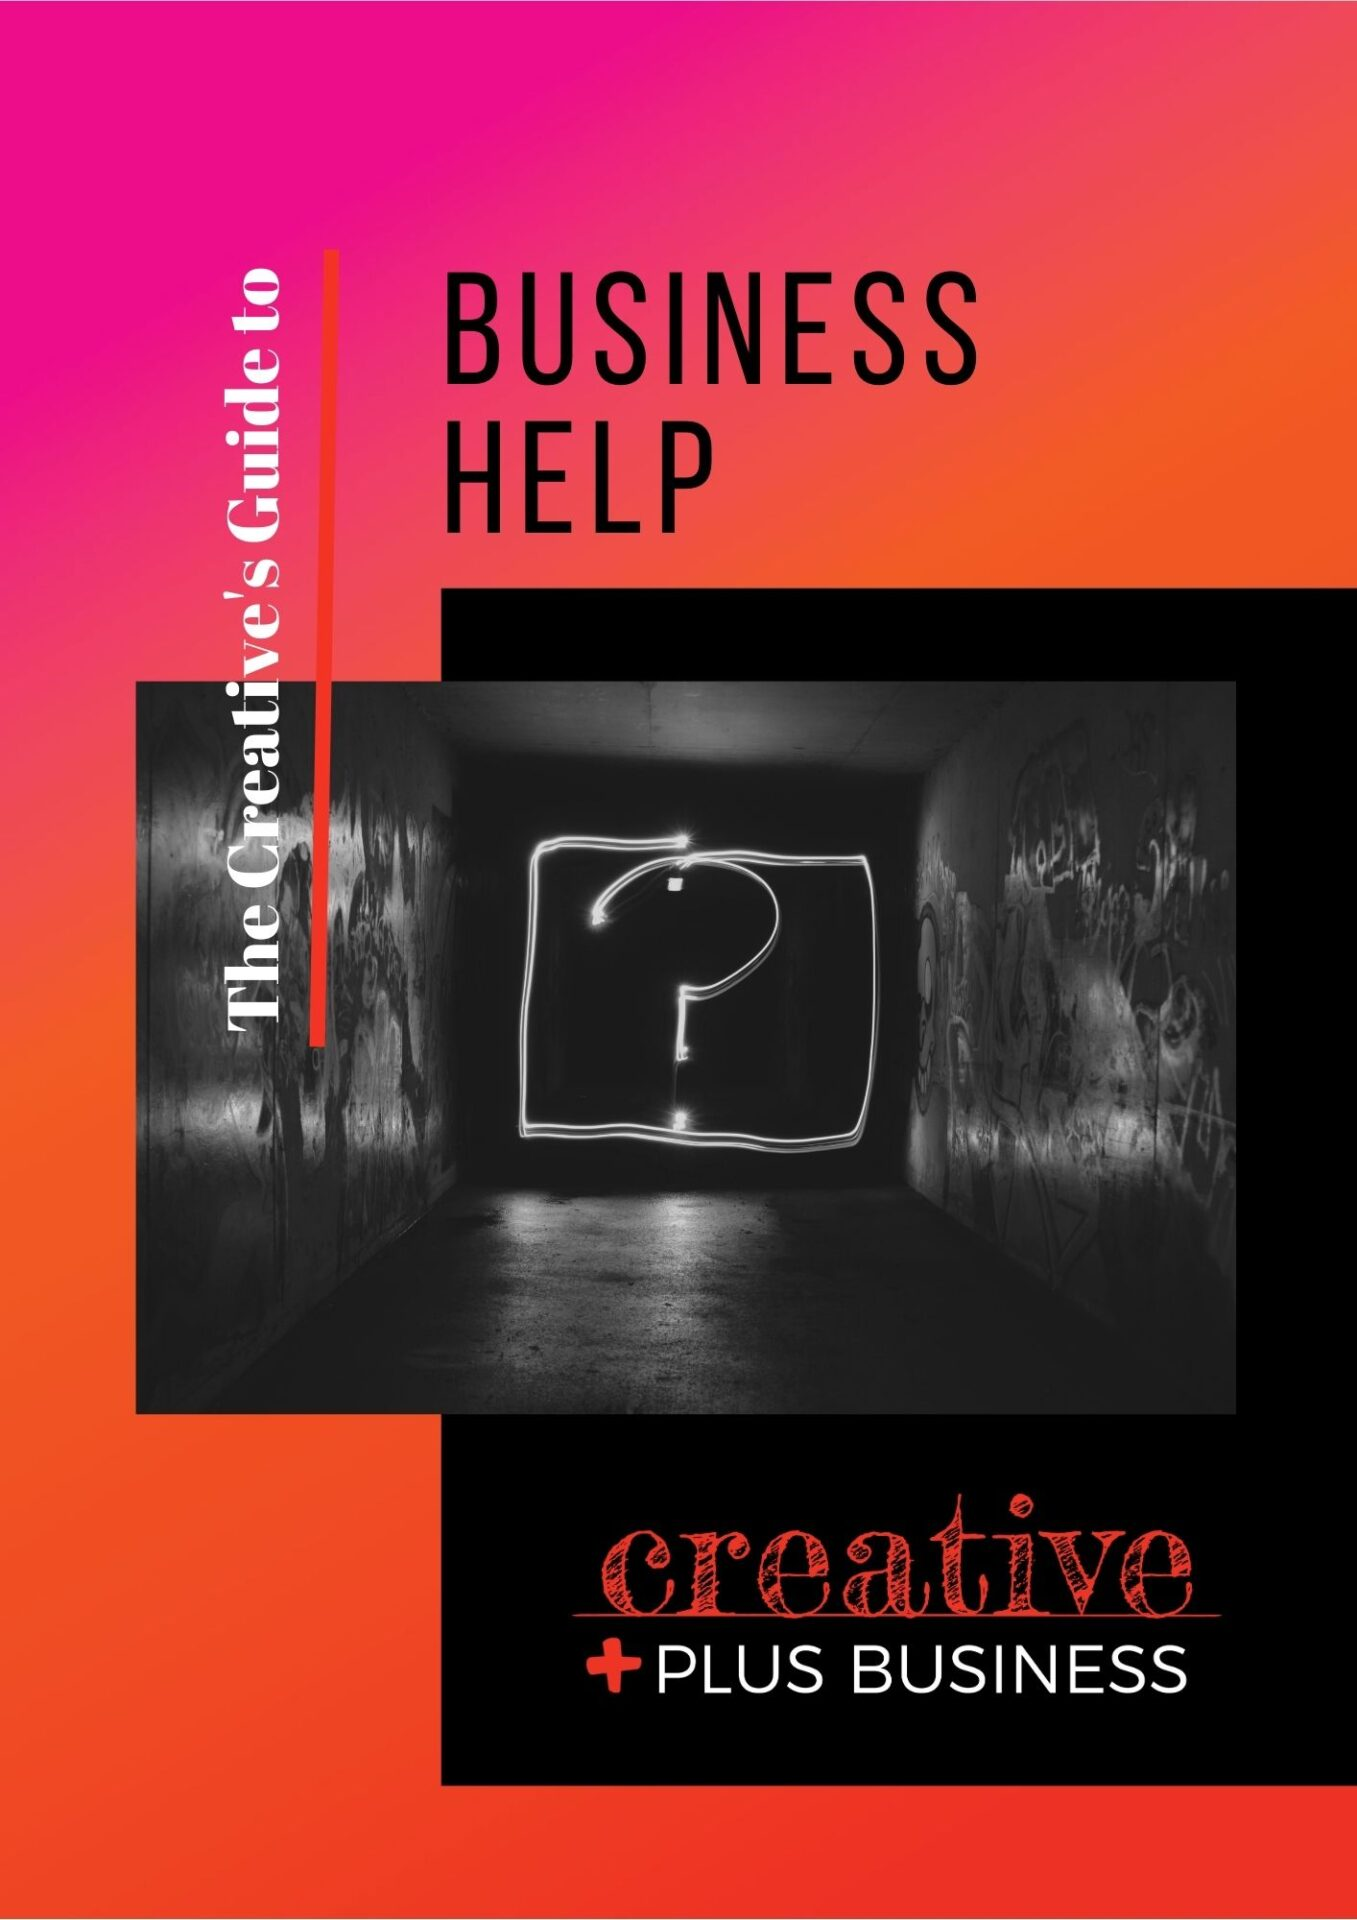 Business Help for creative people